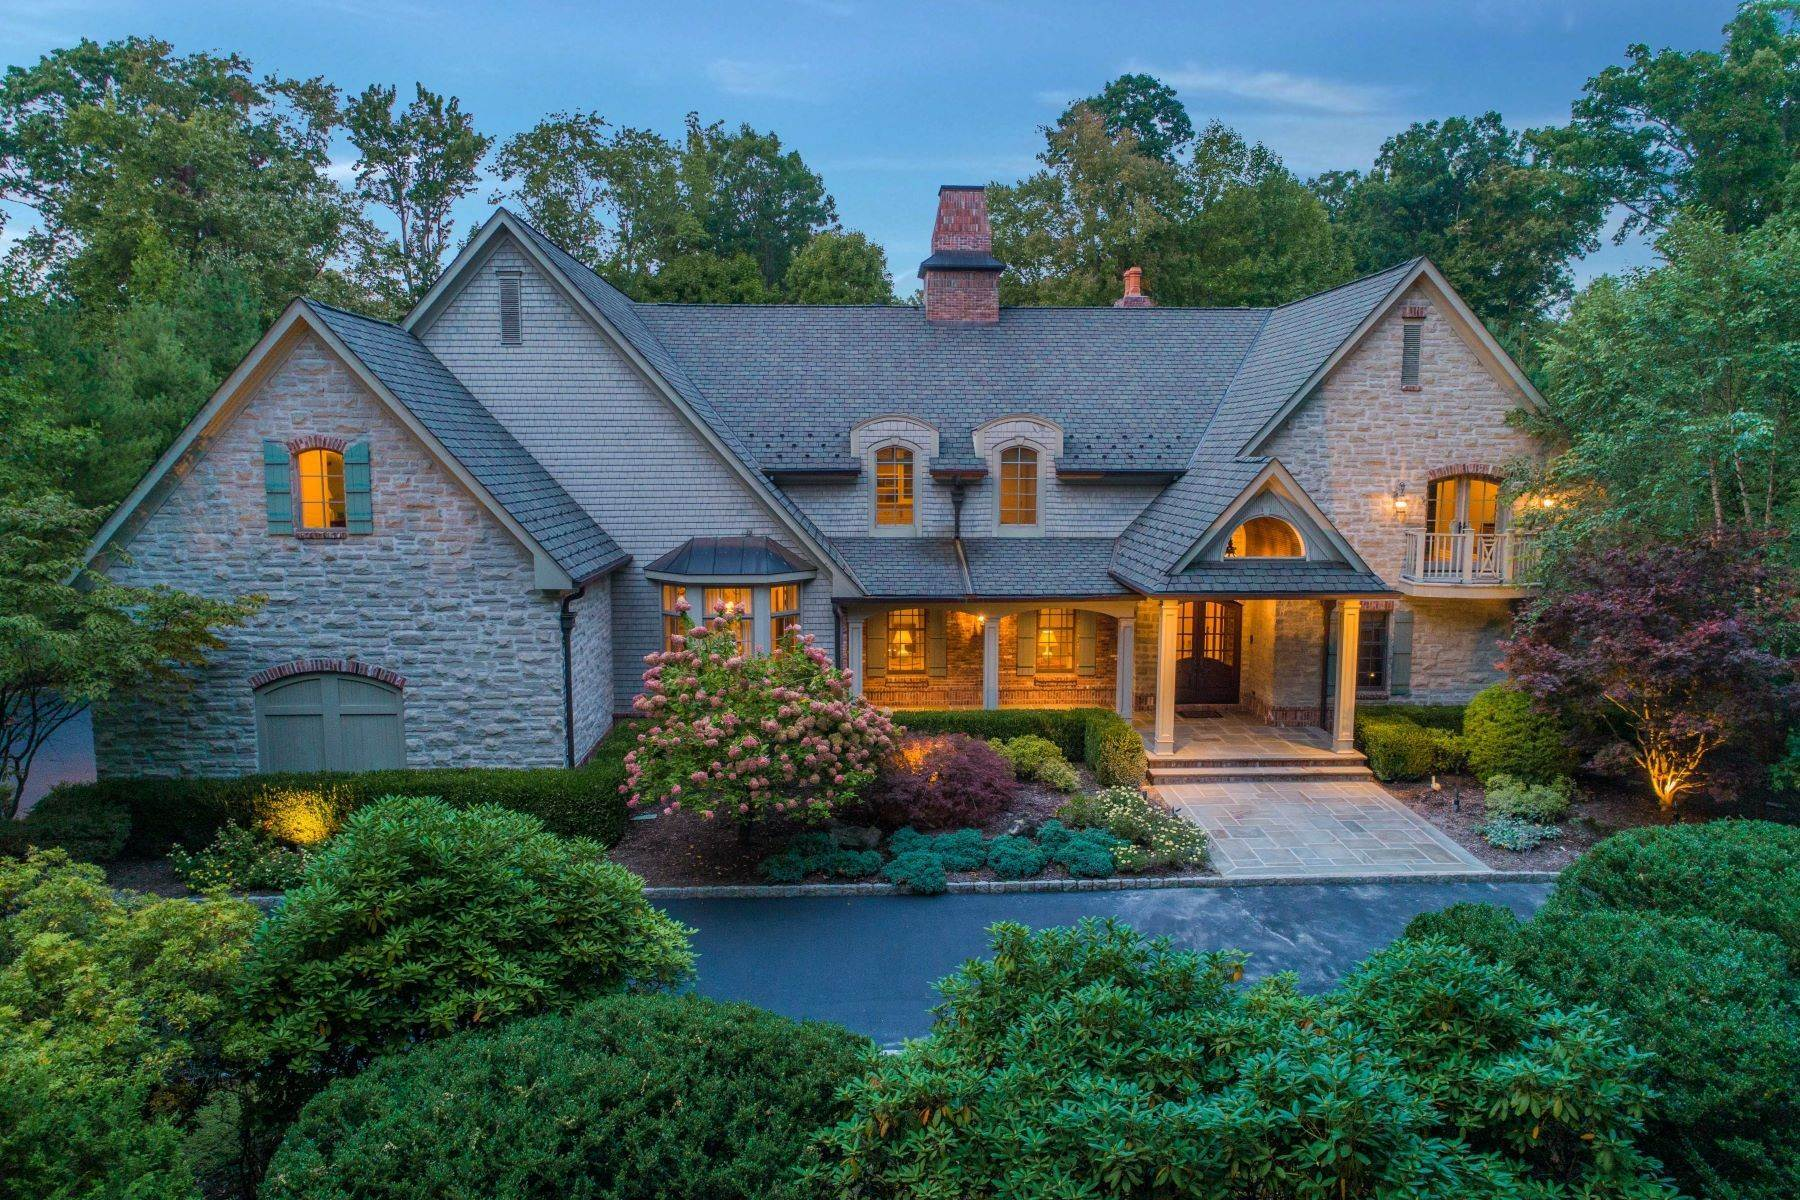 Single Family Homes for Sale at Stunning Estate 55 Anona Dr Upper Saddle River, New Jersey 07458 United States